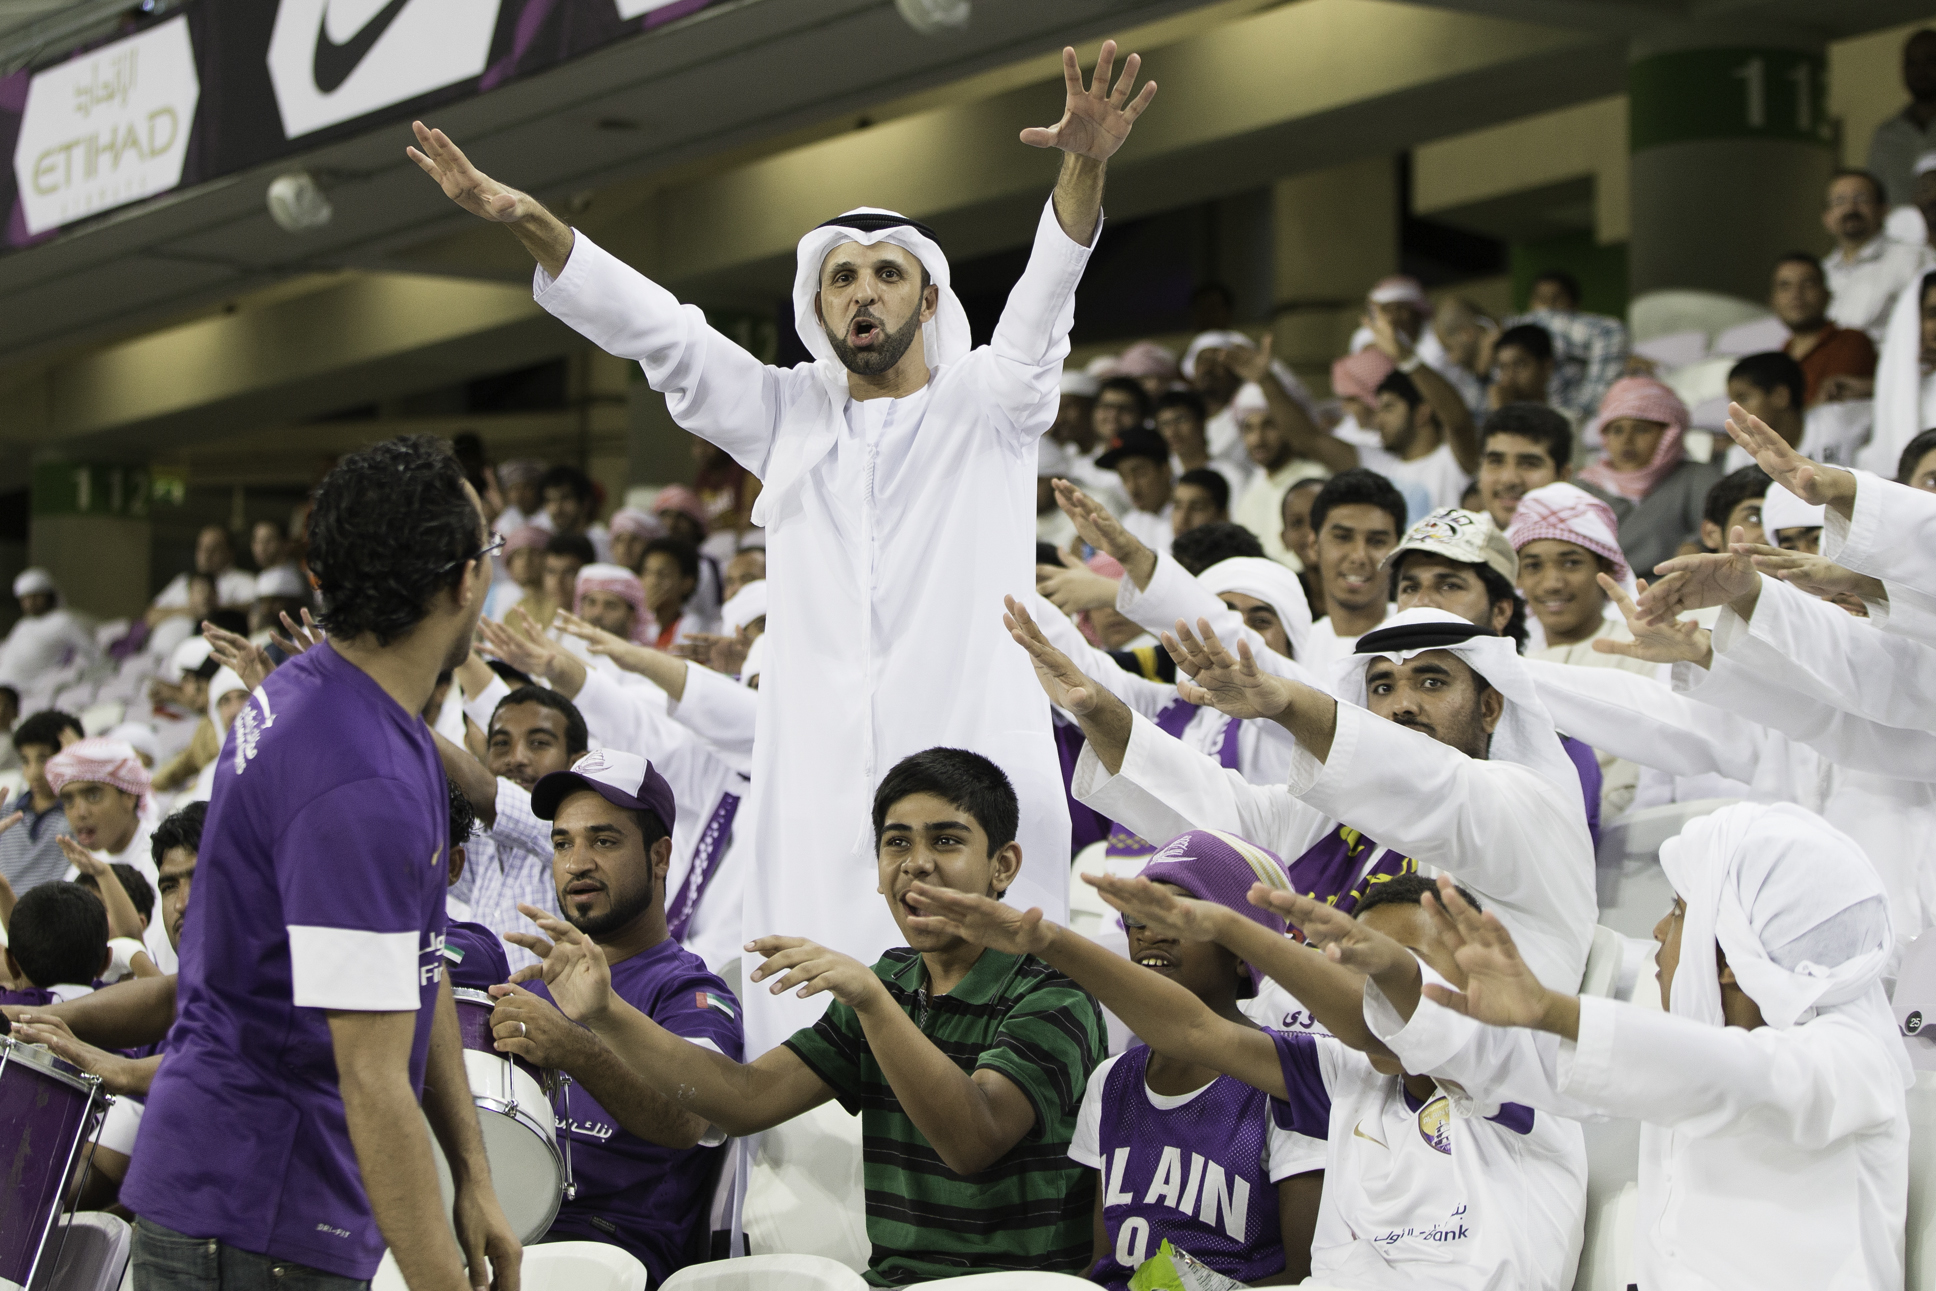 It is happening in the UAE - yes it is! : AL AIN FC ...